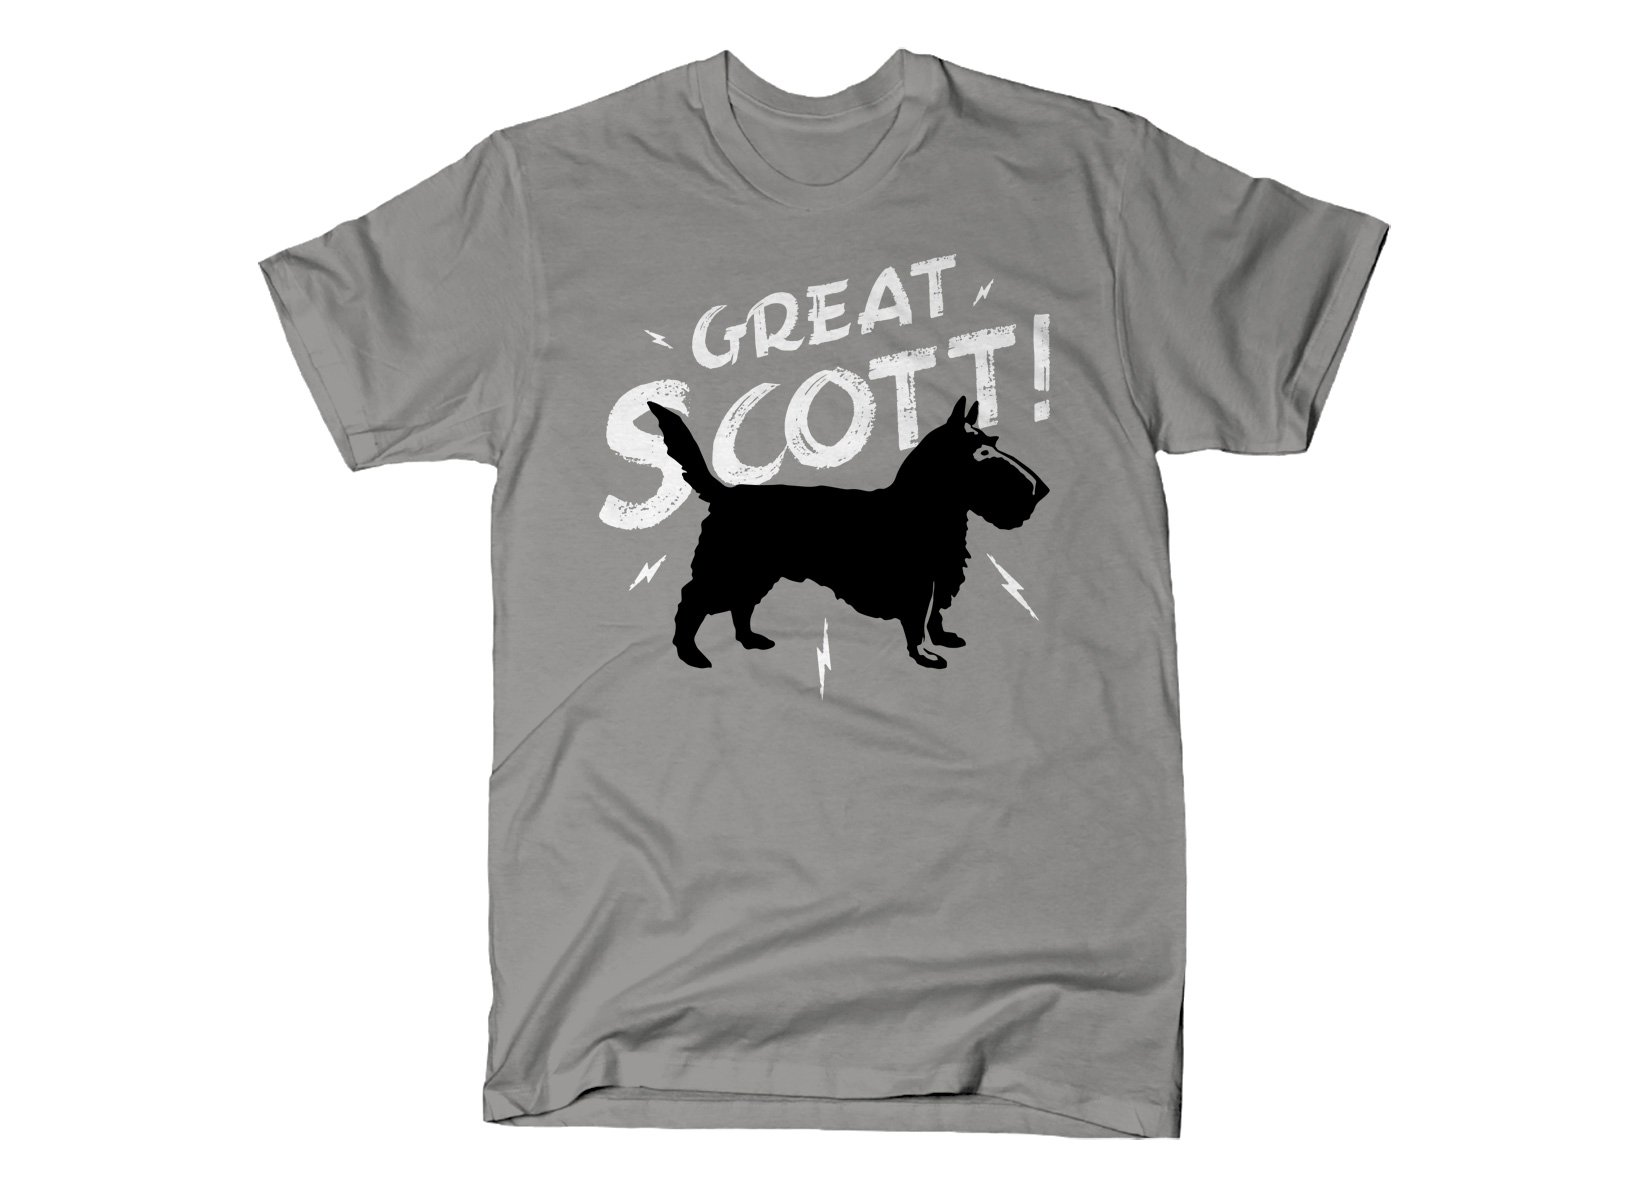 Great Scott! on Mens T-Shirt